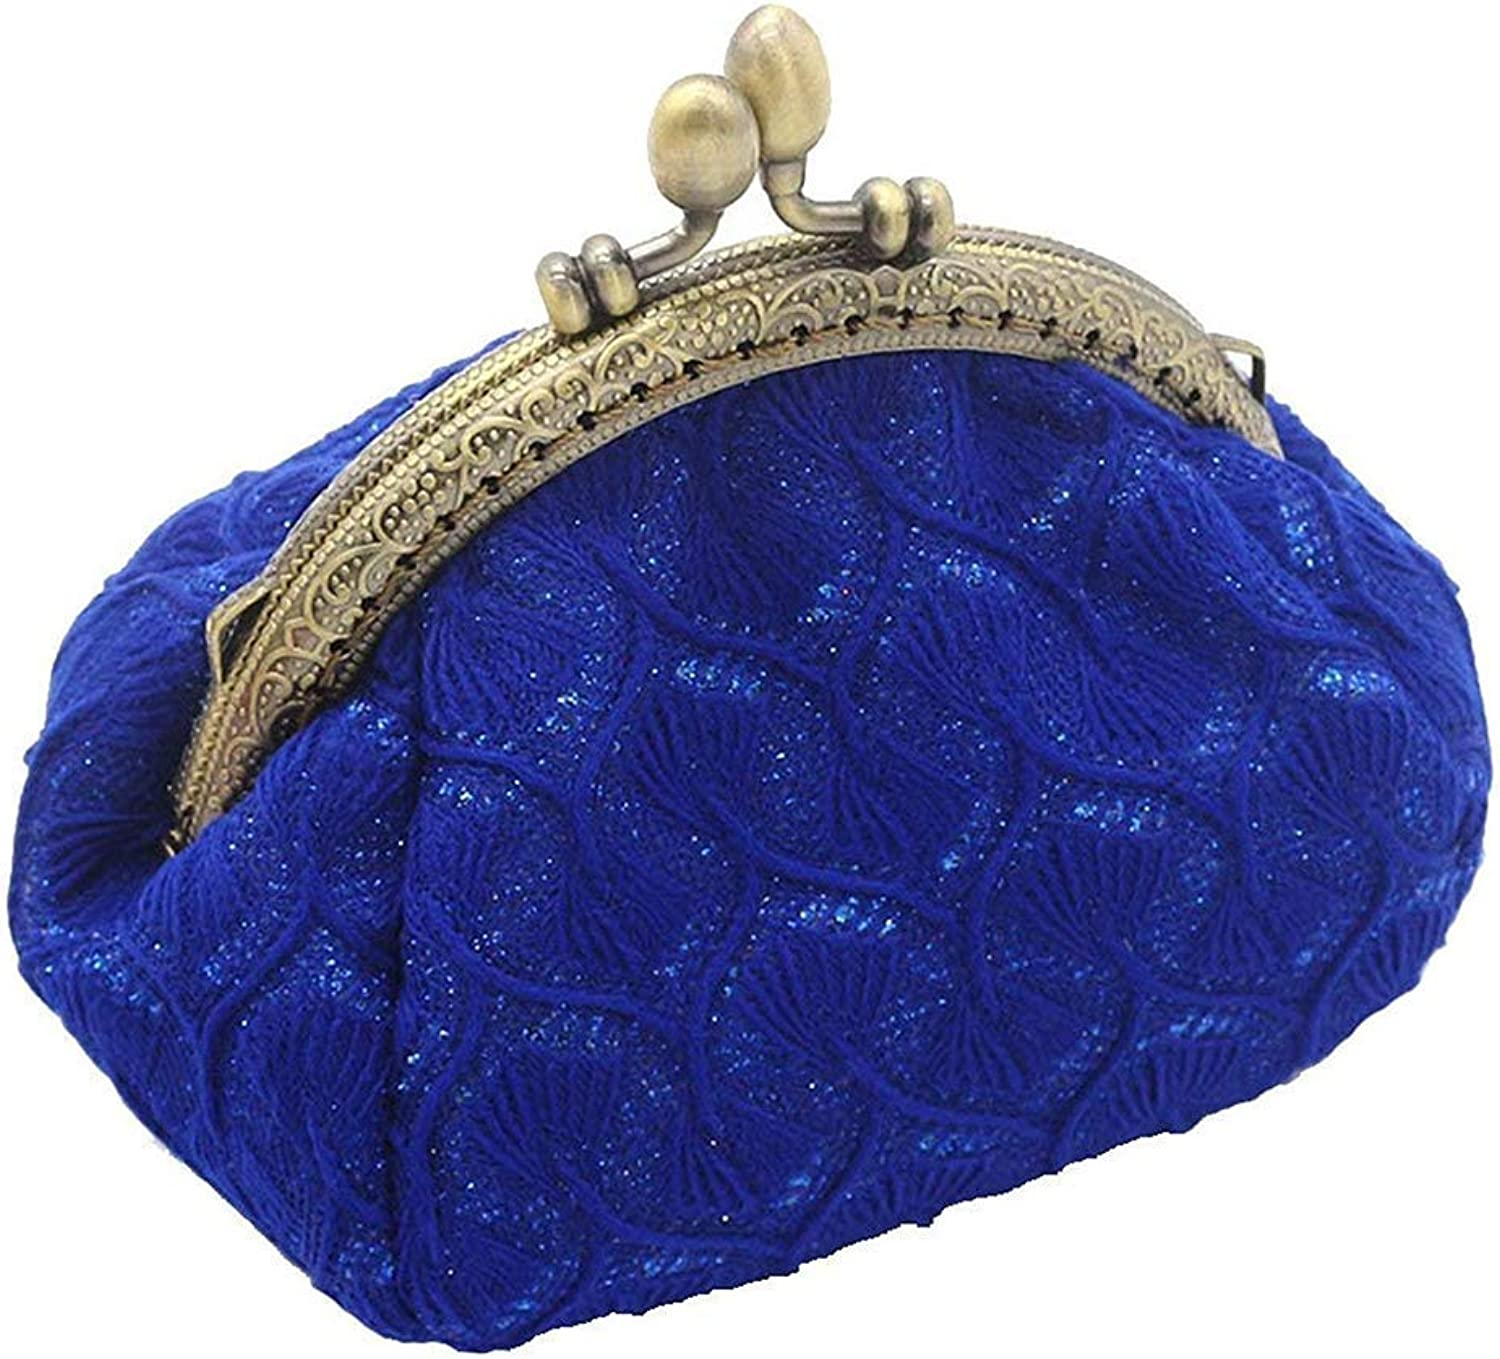 New fashion ladies wallet Retro Women's Cute Classic Exquisite Buckle Coin Purse (color   bluee, Size   M)